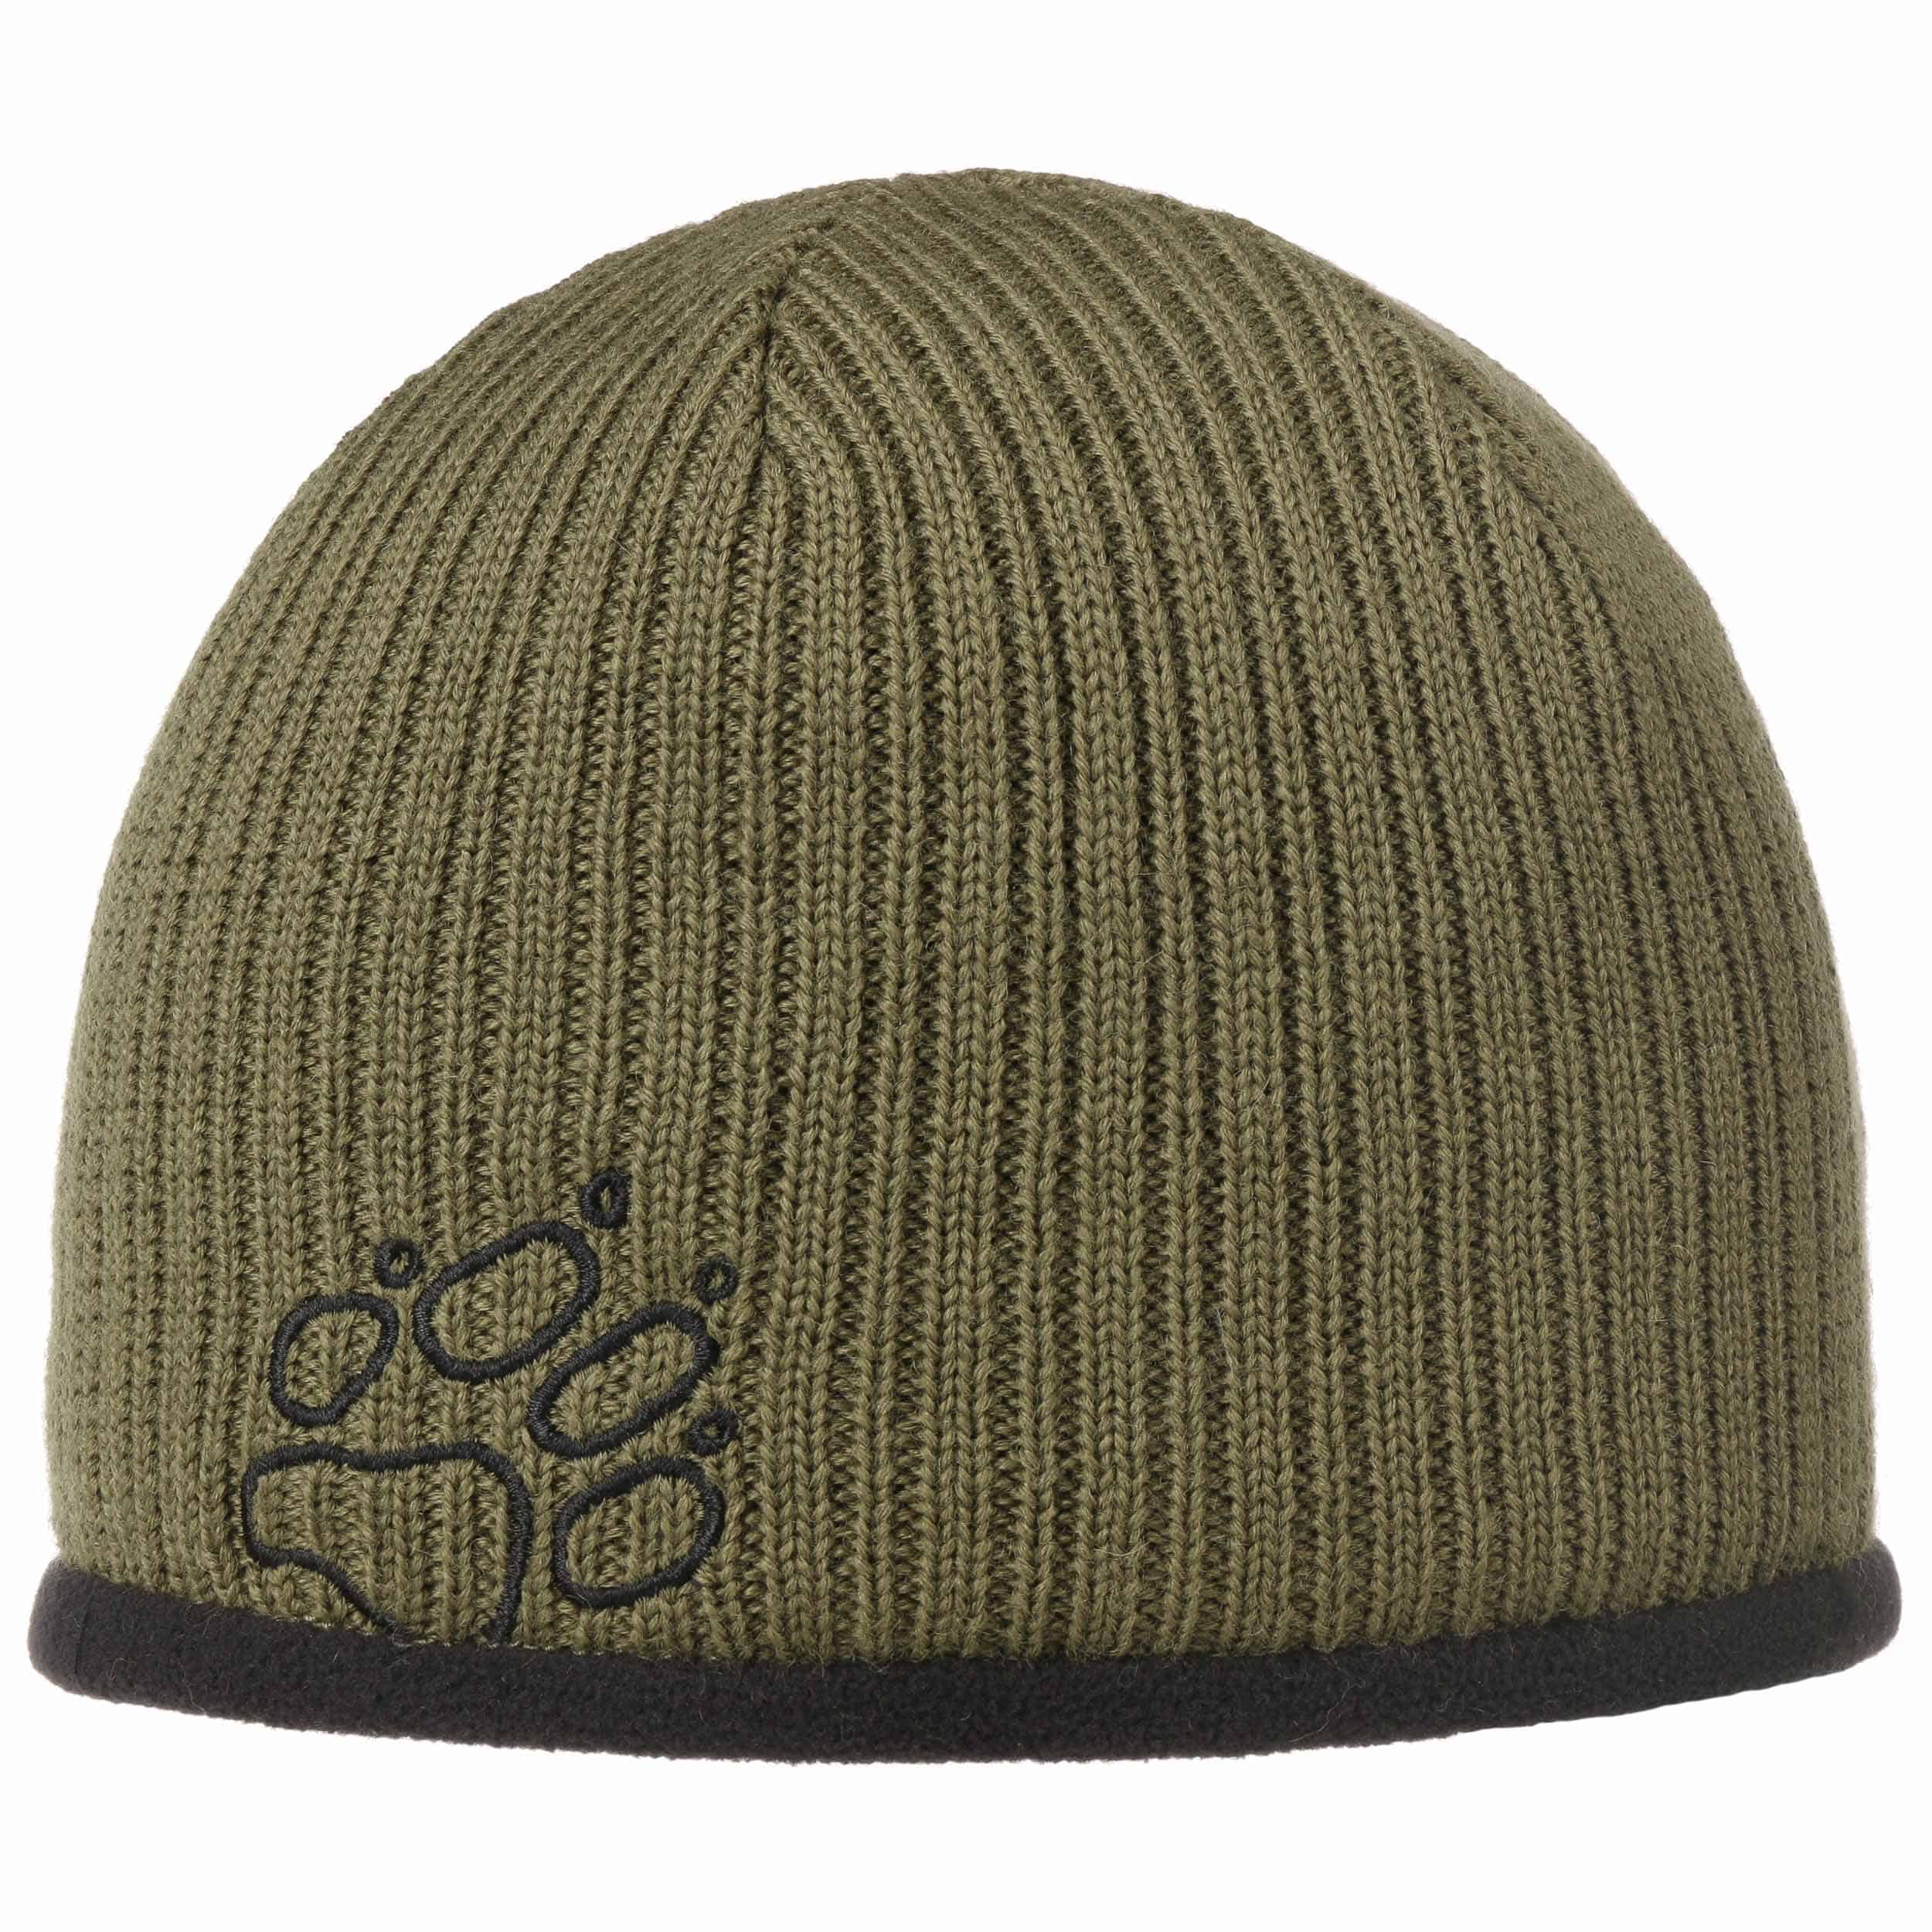 8e3e82acb3c ... Stormlock Ribbed Beanie by Jack Wolfskin - olive 4 ...